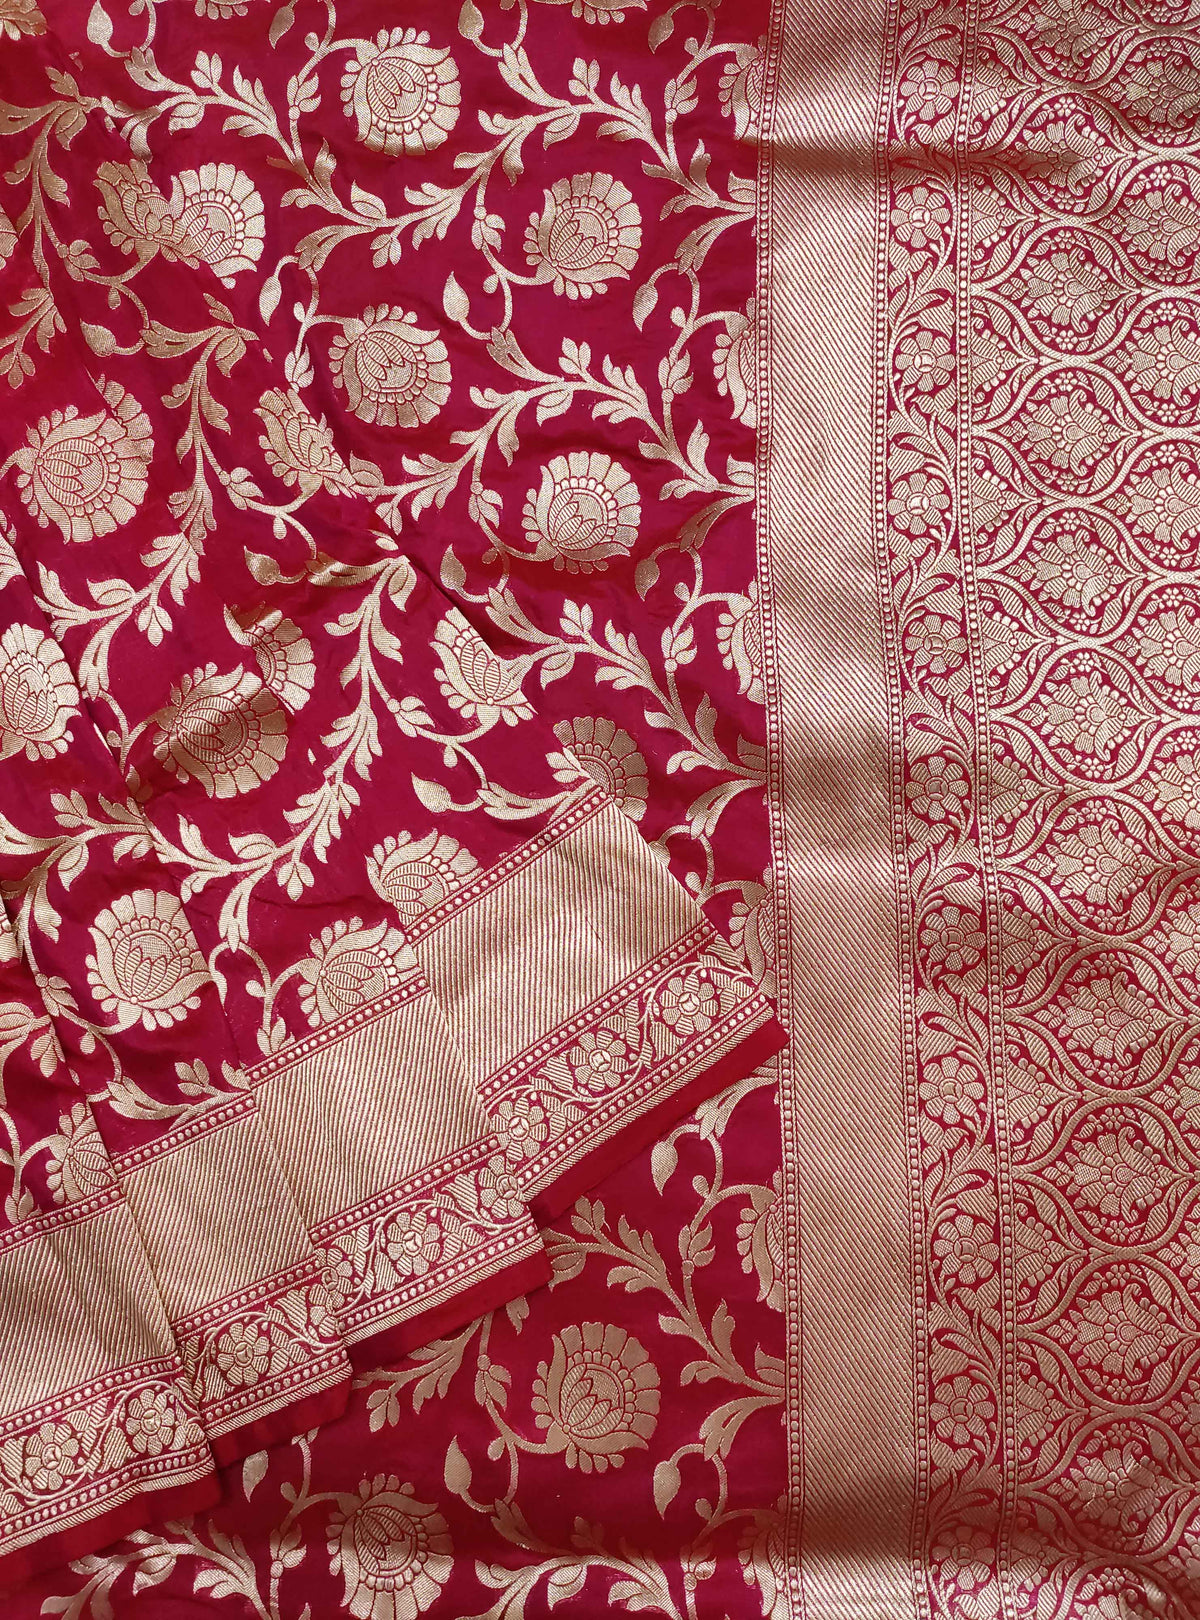 Carmine red Katan silk handloom Banarasi saree with flower jaal (2) Close up